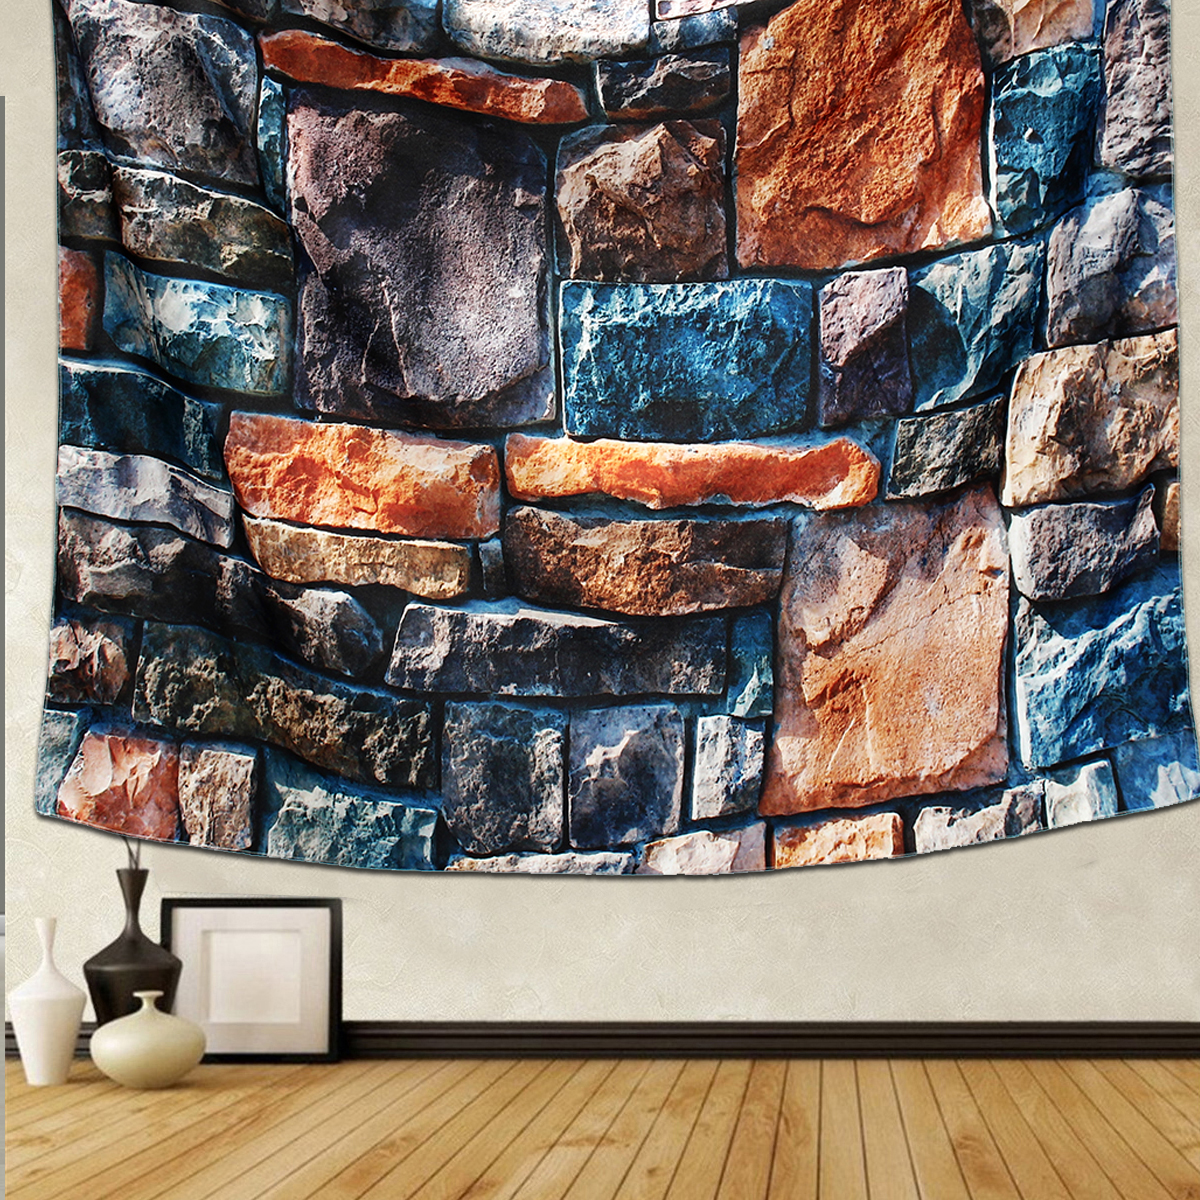 New 3D Stone Brick Decorative Tapestry Wall Hanging Living Room Decor Bedspread